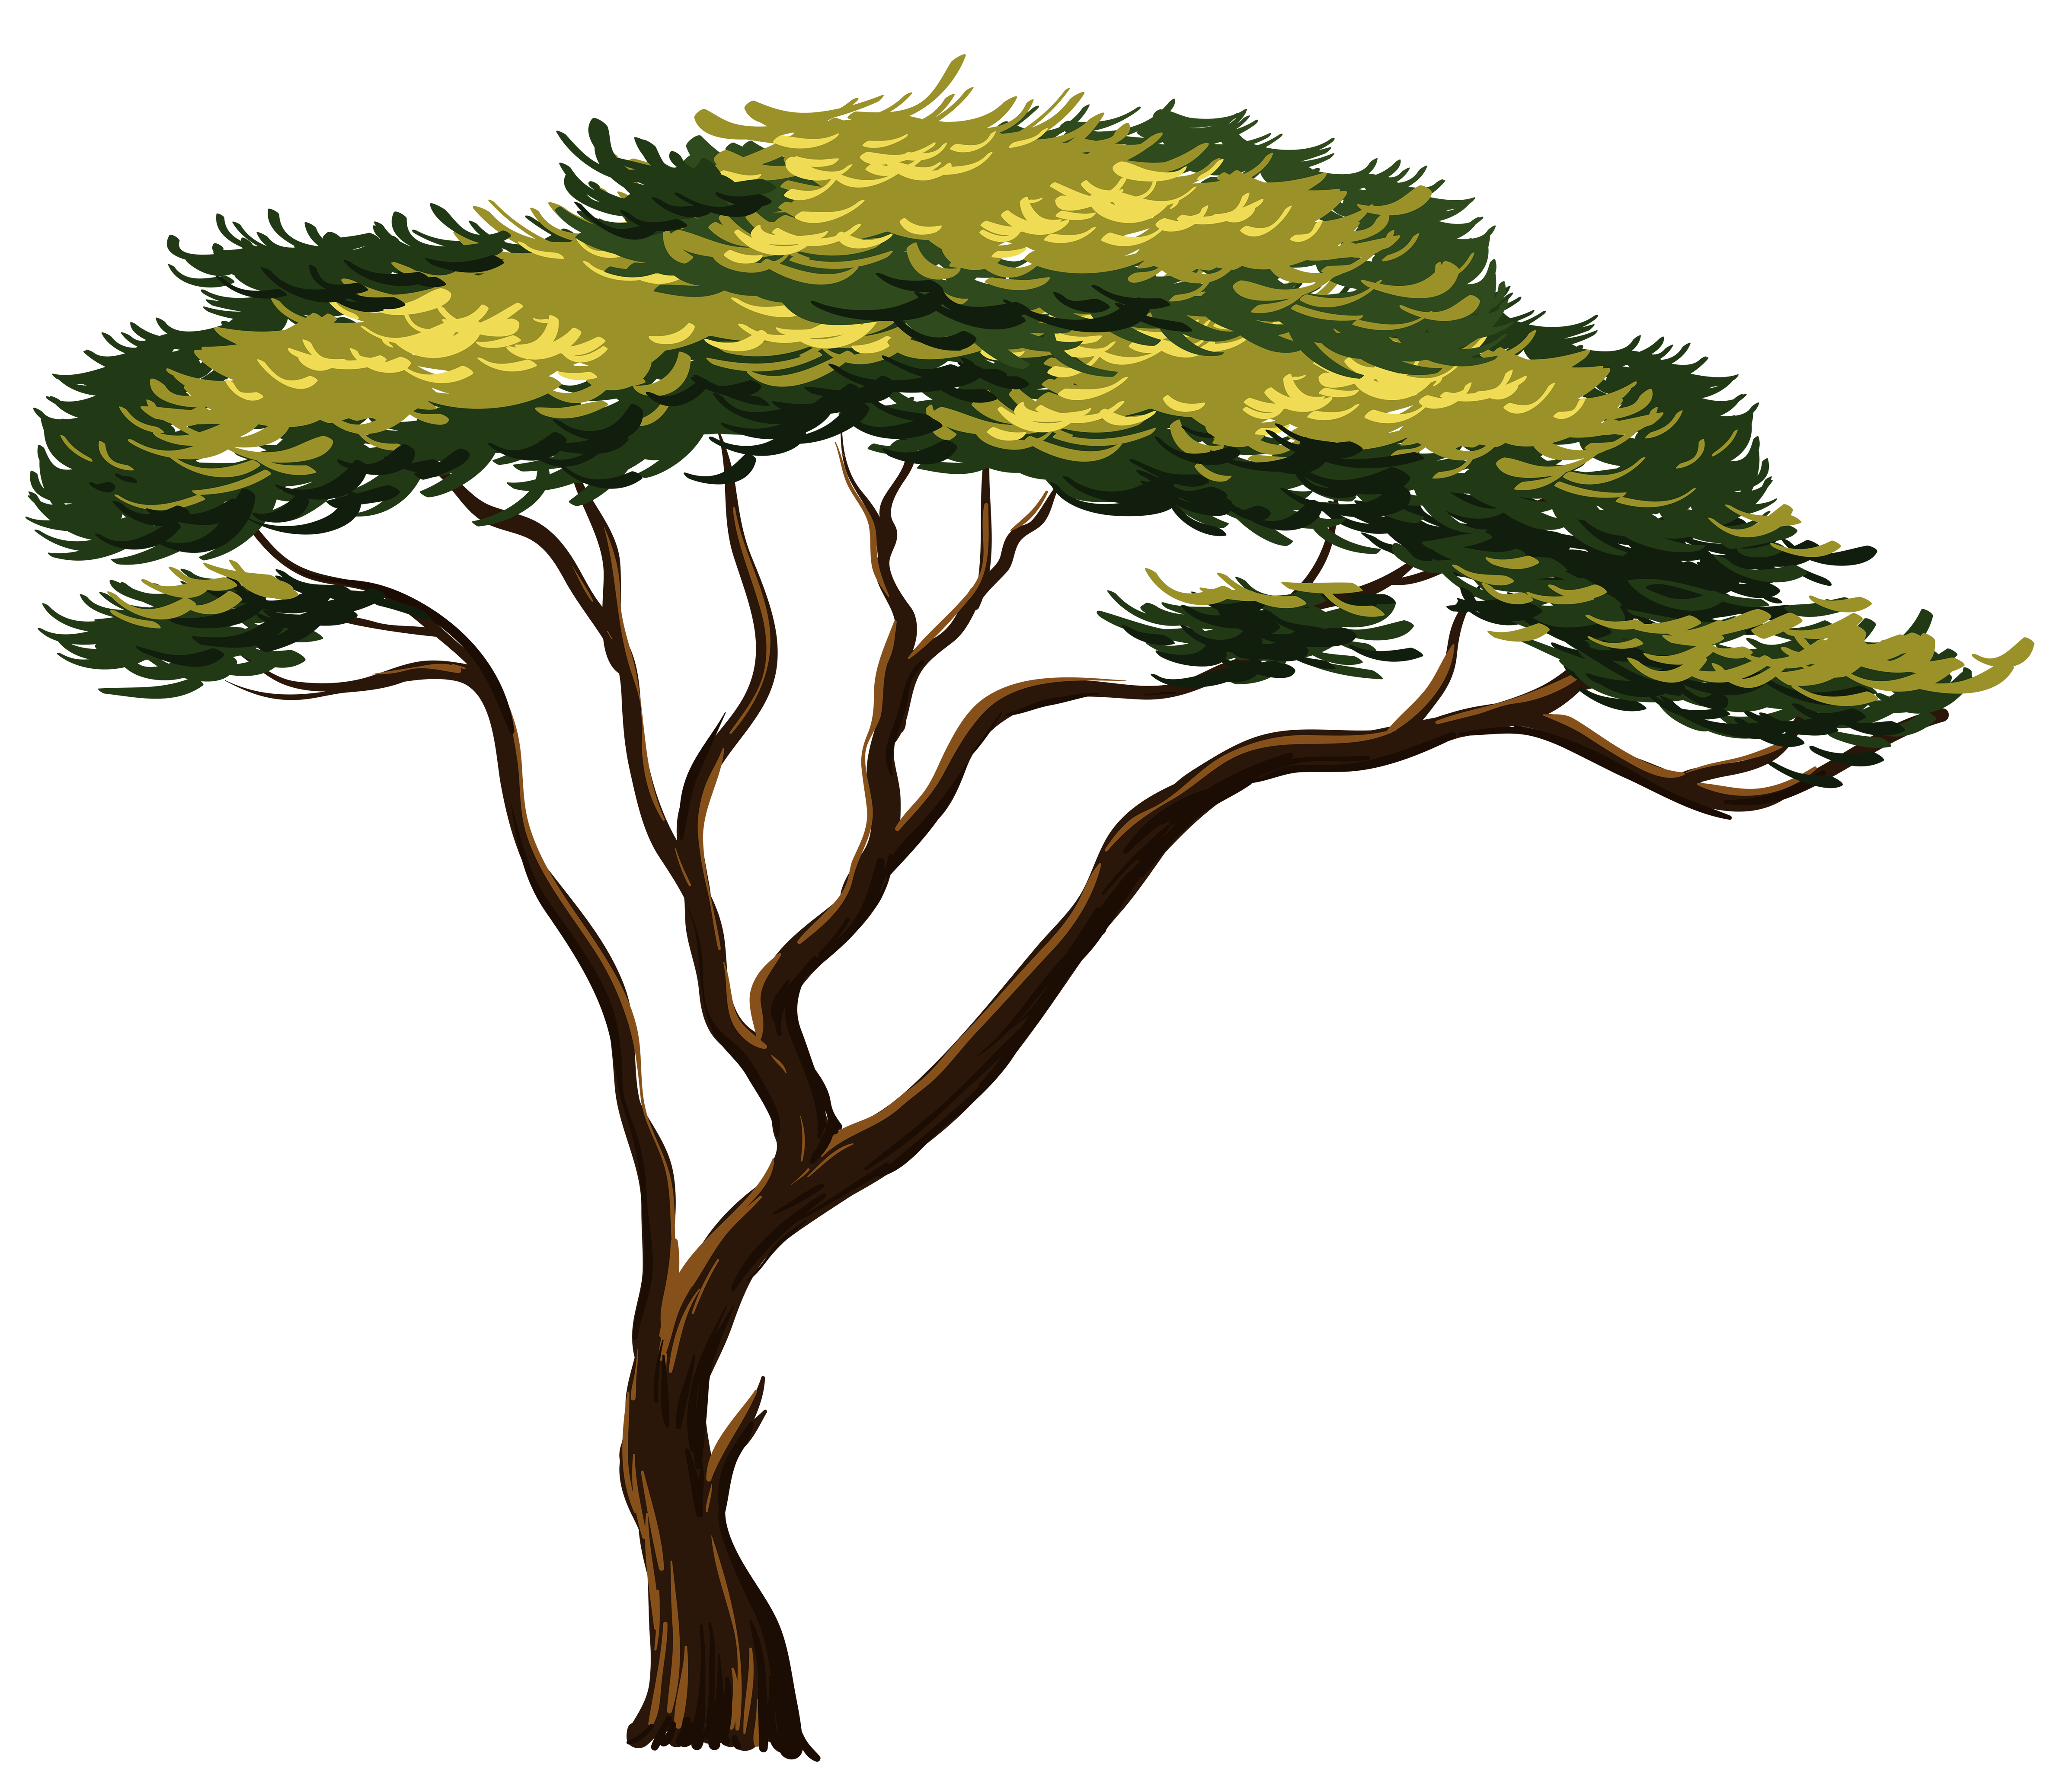 Africa clipart transparent. Painted african tree png